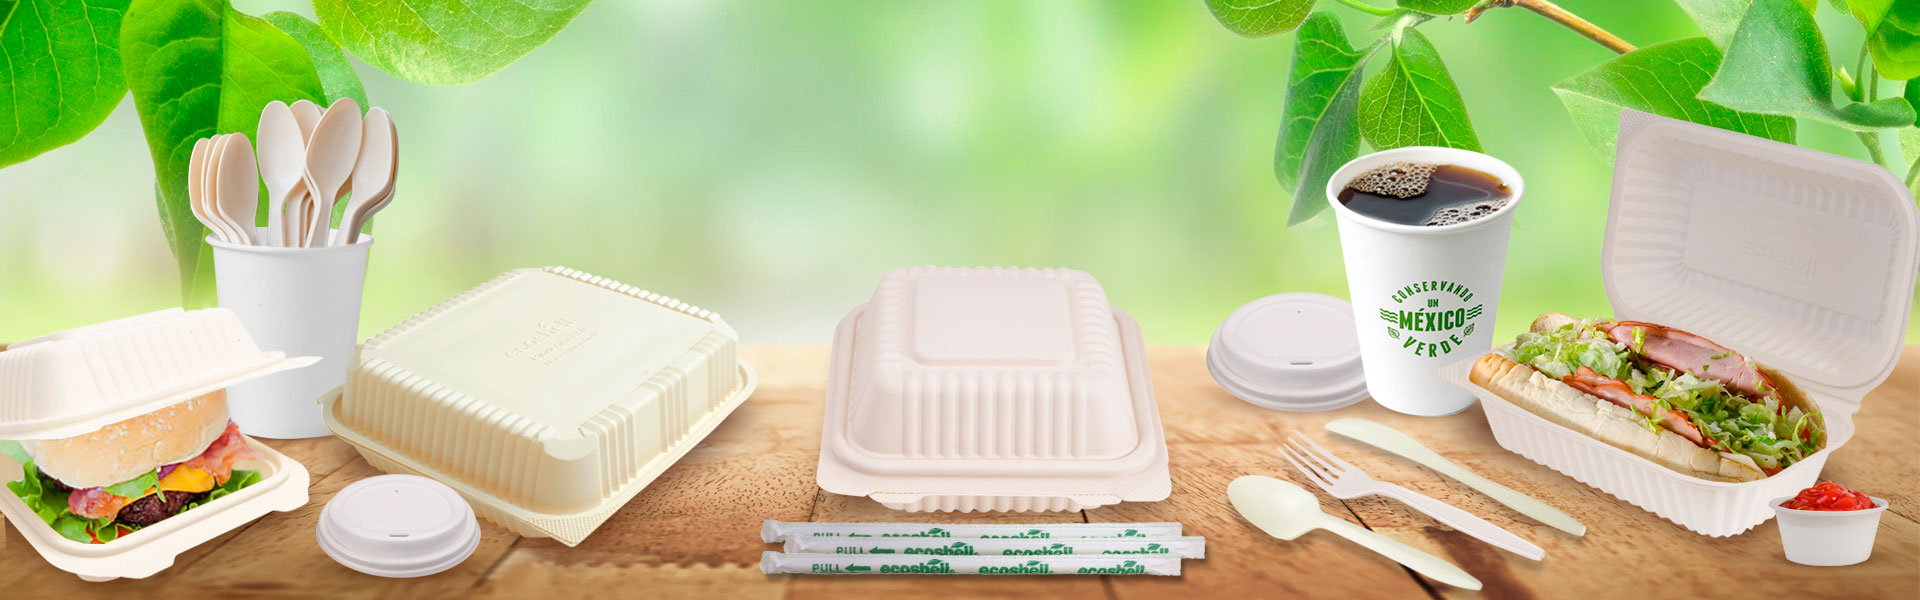 JM Distribuidores - Desechables Biodegradables